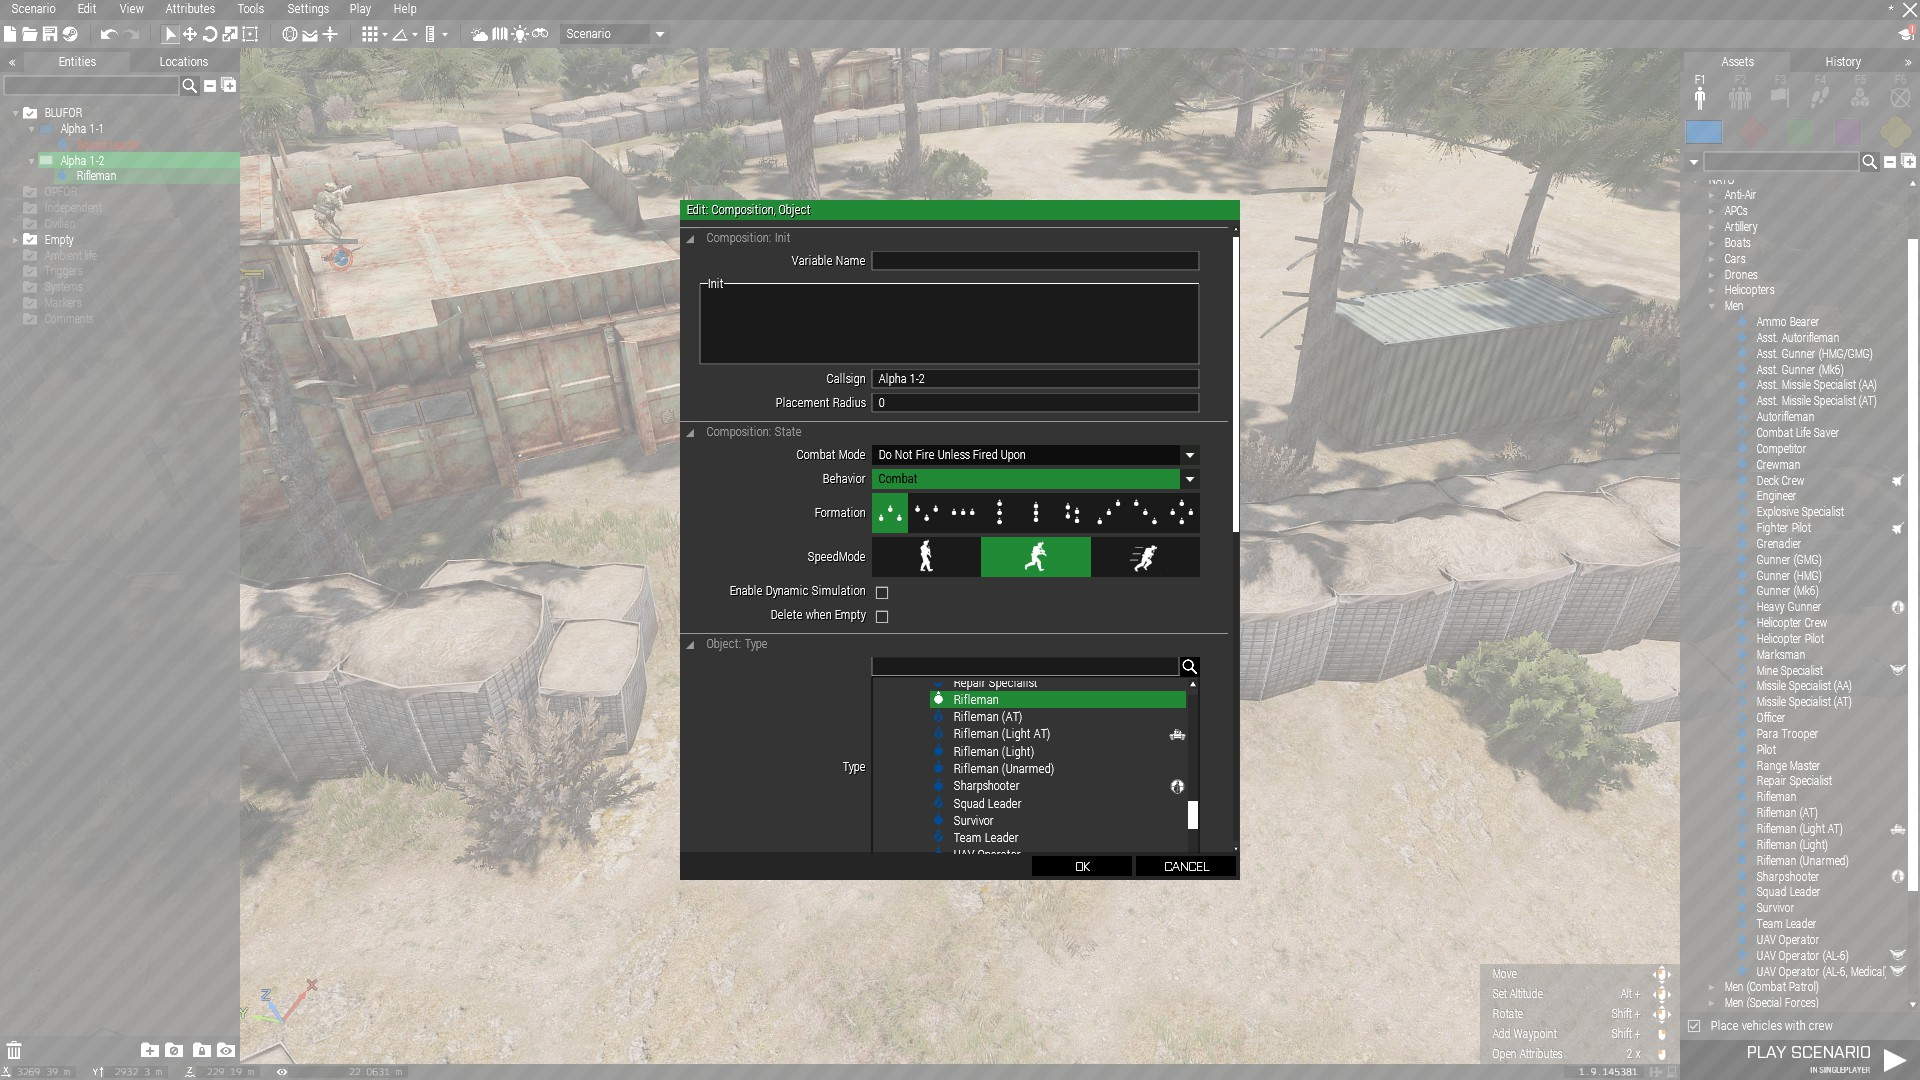 Steam Community :: Guide :: Getting started with Arma 3 in 2019